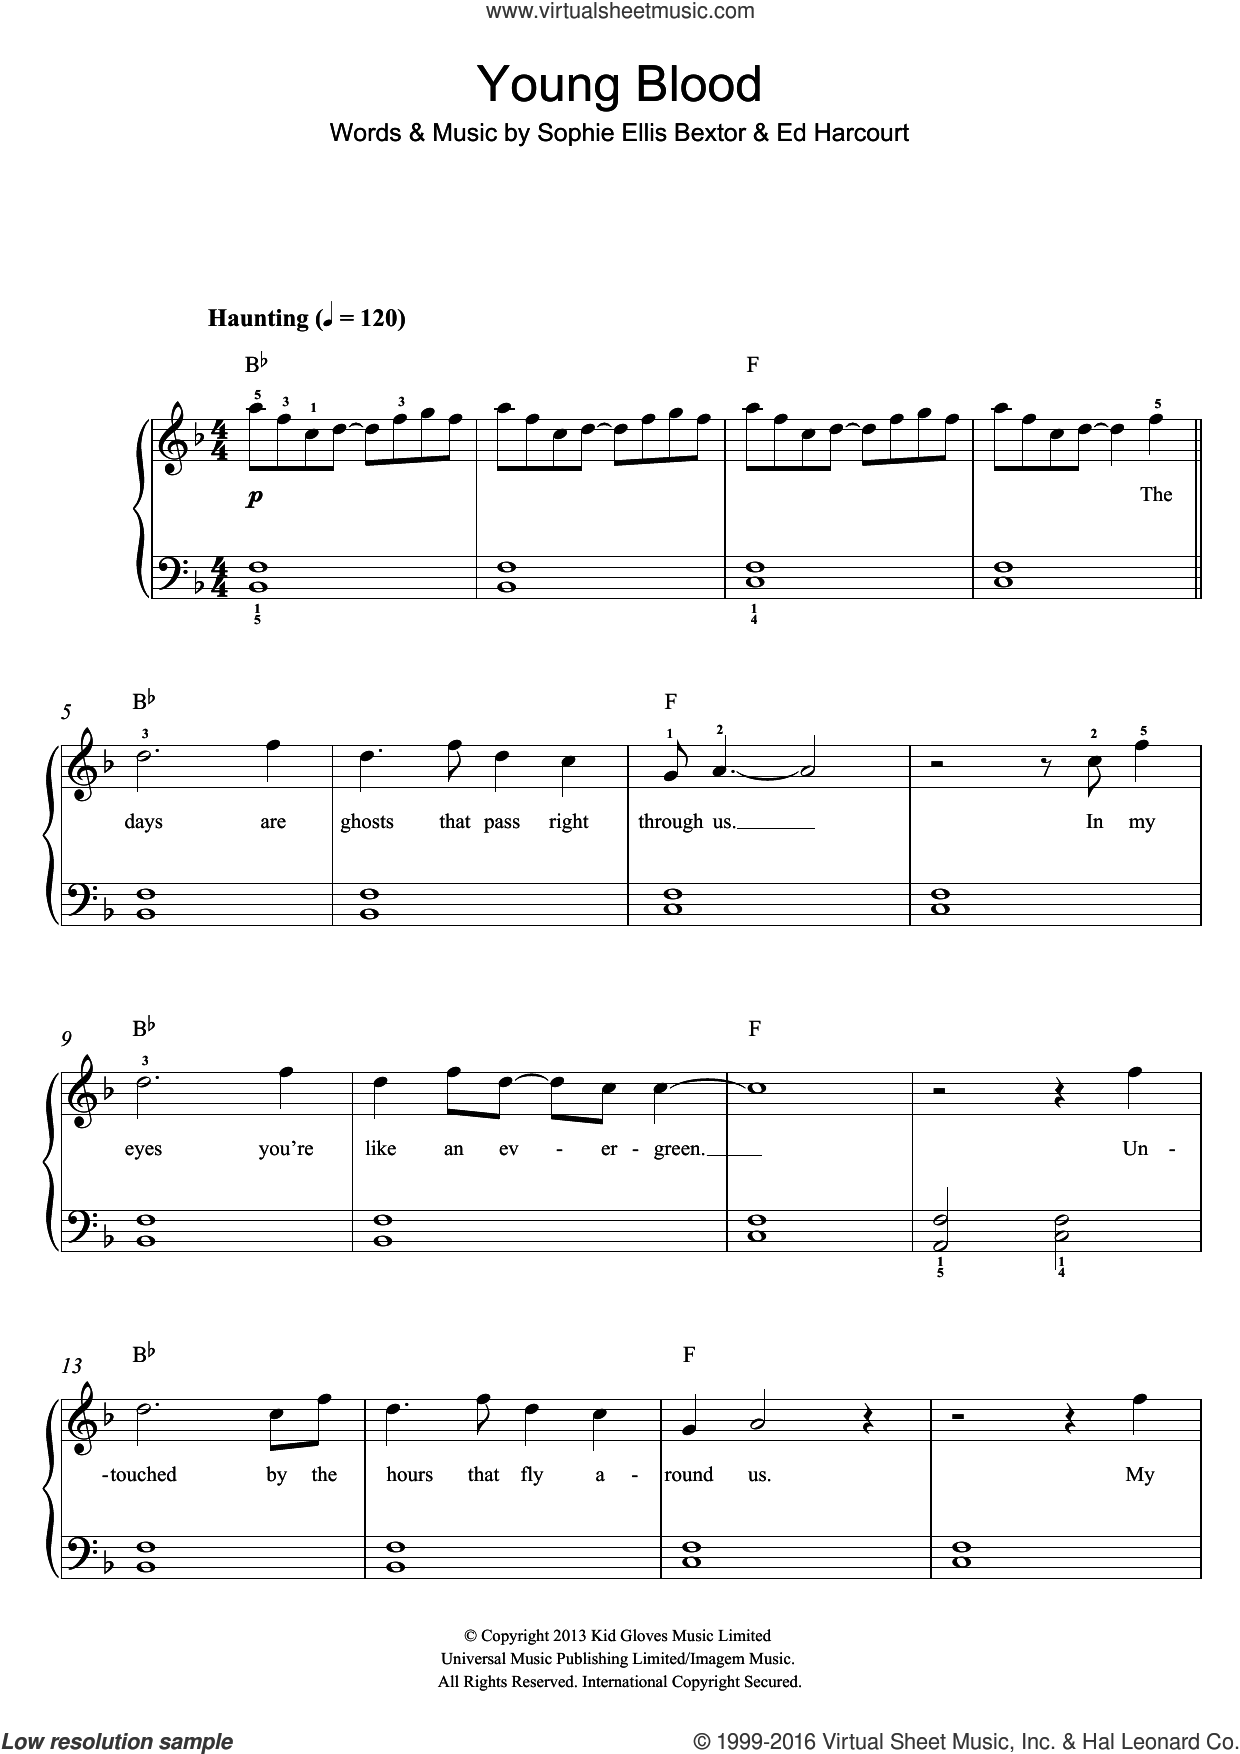 Young Blood sheet music for piano solo by Sophie Ellis-Bextor and Sophie Ellis Bextor, easy. Score Image Preview.